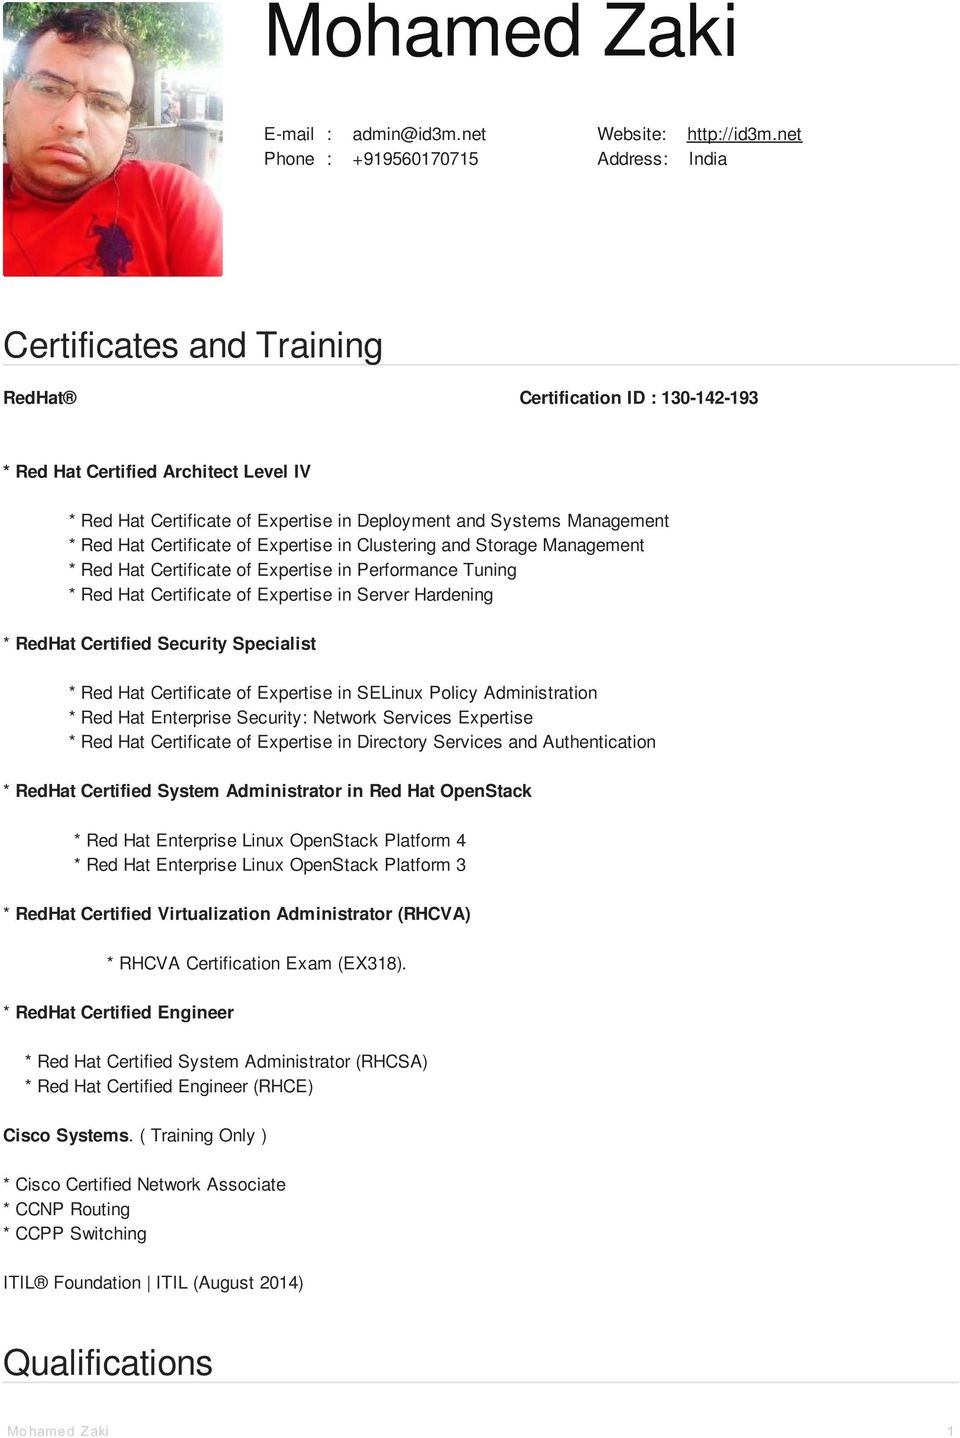 Certificate of Expertise in Clustering and Storage Management * Red Hat Certificate of Expertise in Performance Tuning * Red Hat Certificate of Expertise in Server Hardening * RedHat Certified